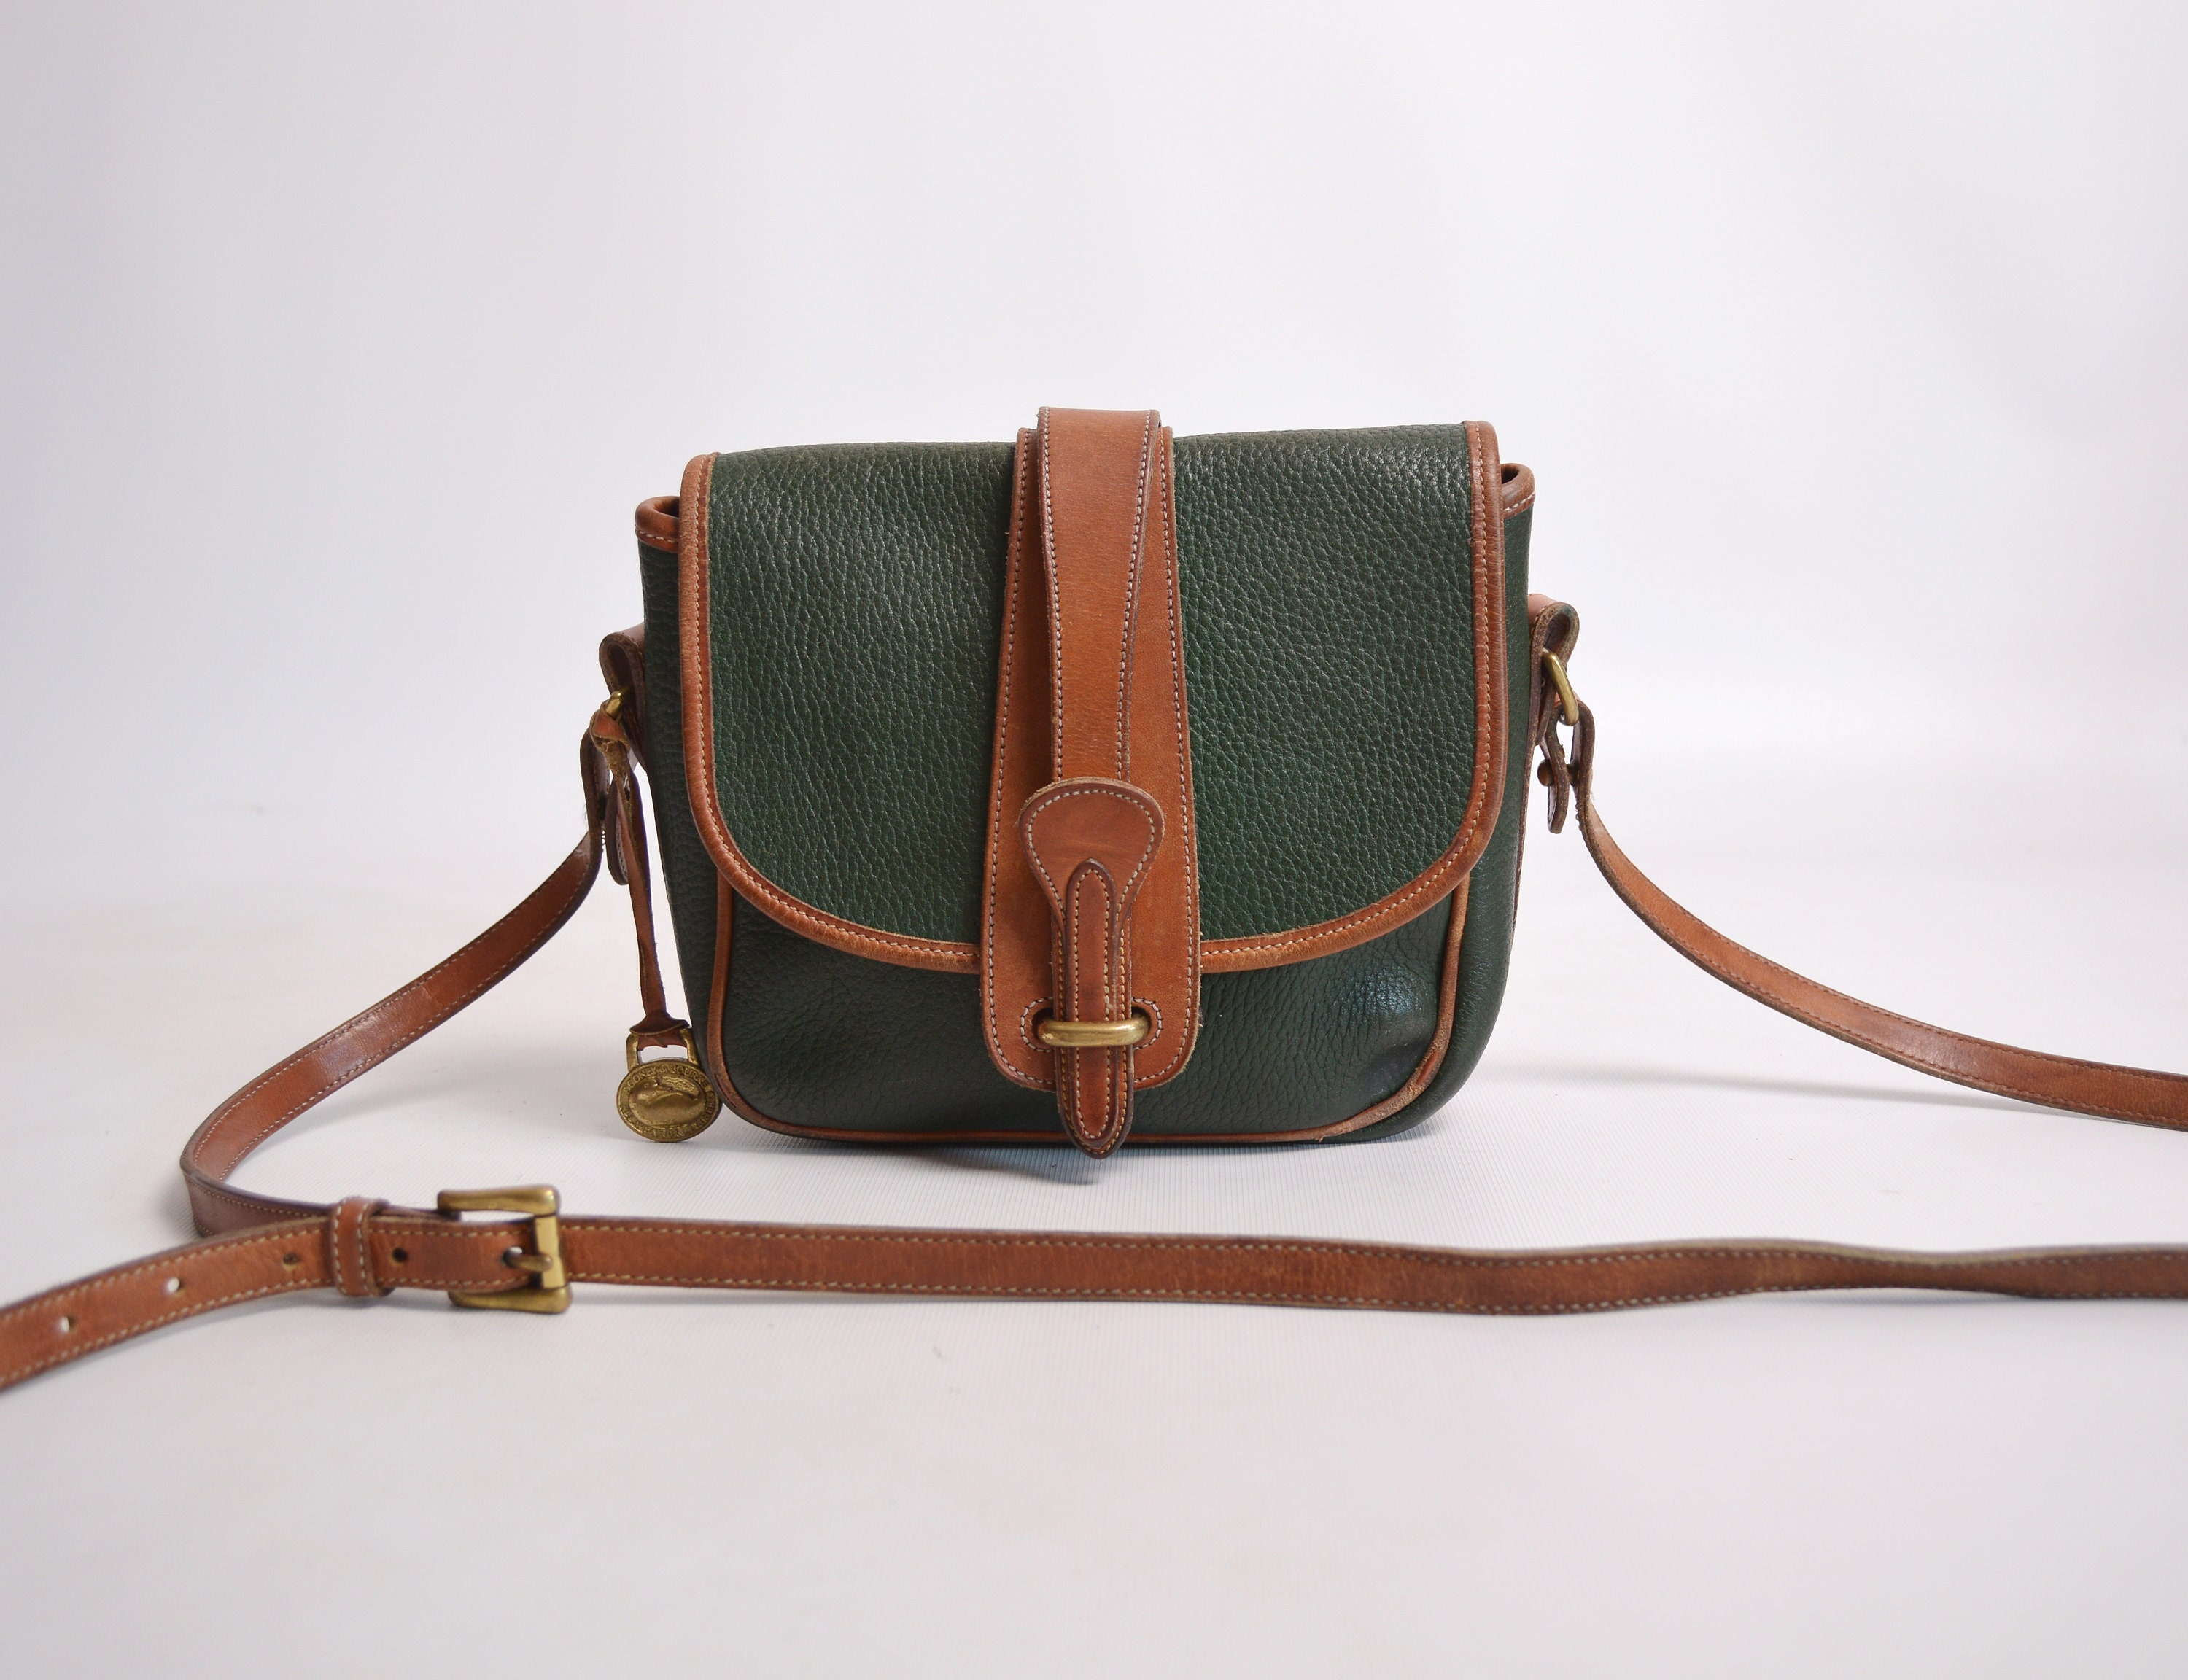 1e6962f49780 Dooney   Bourke Equestrian Binocular Bag   All Weather Leather ...